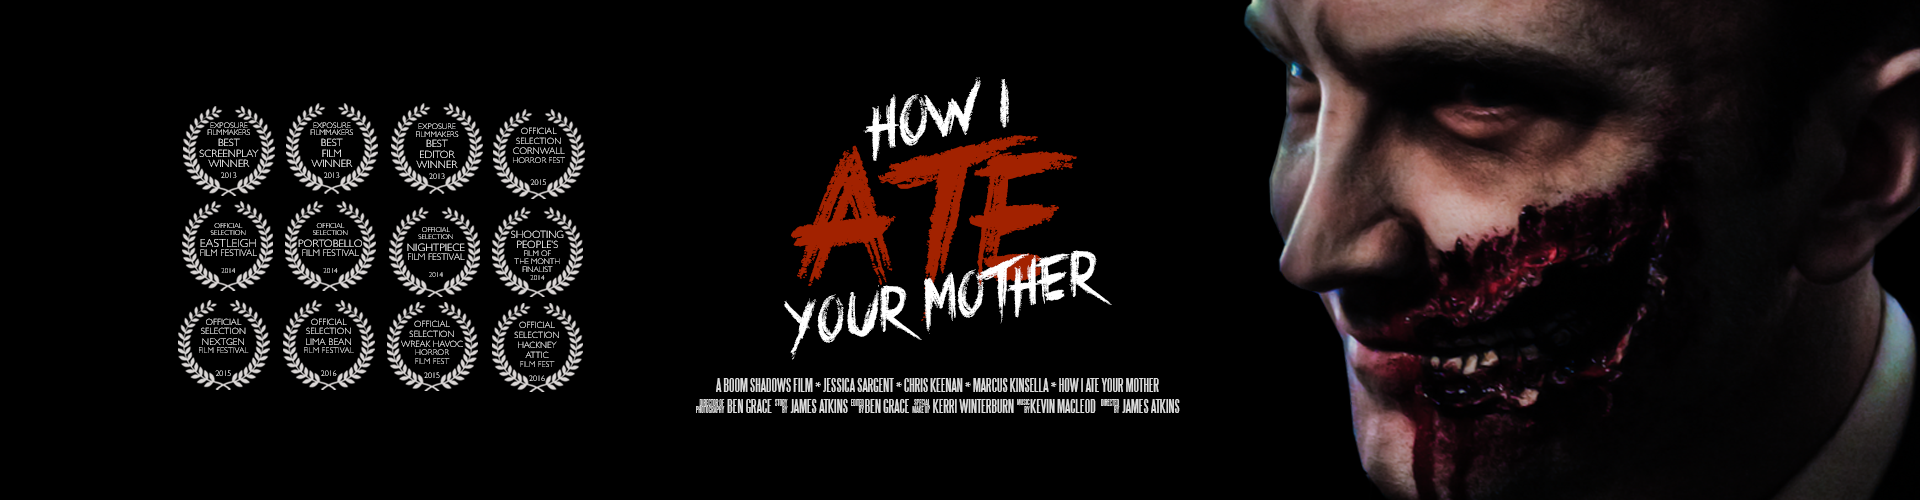 How I Ate Your Mother